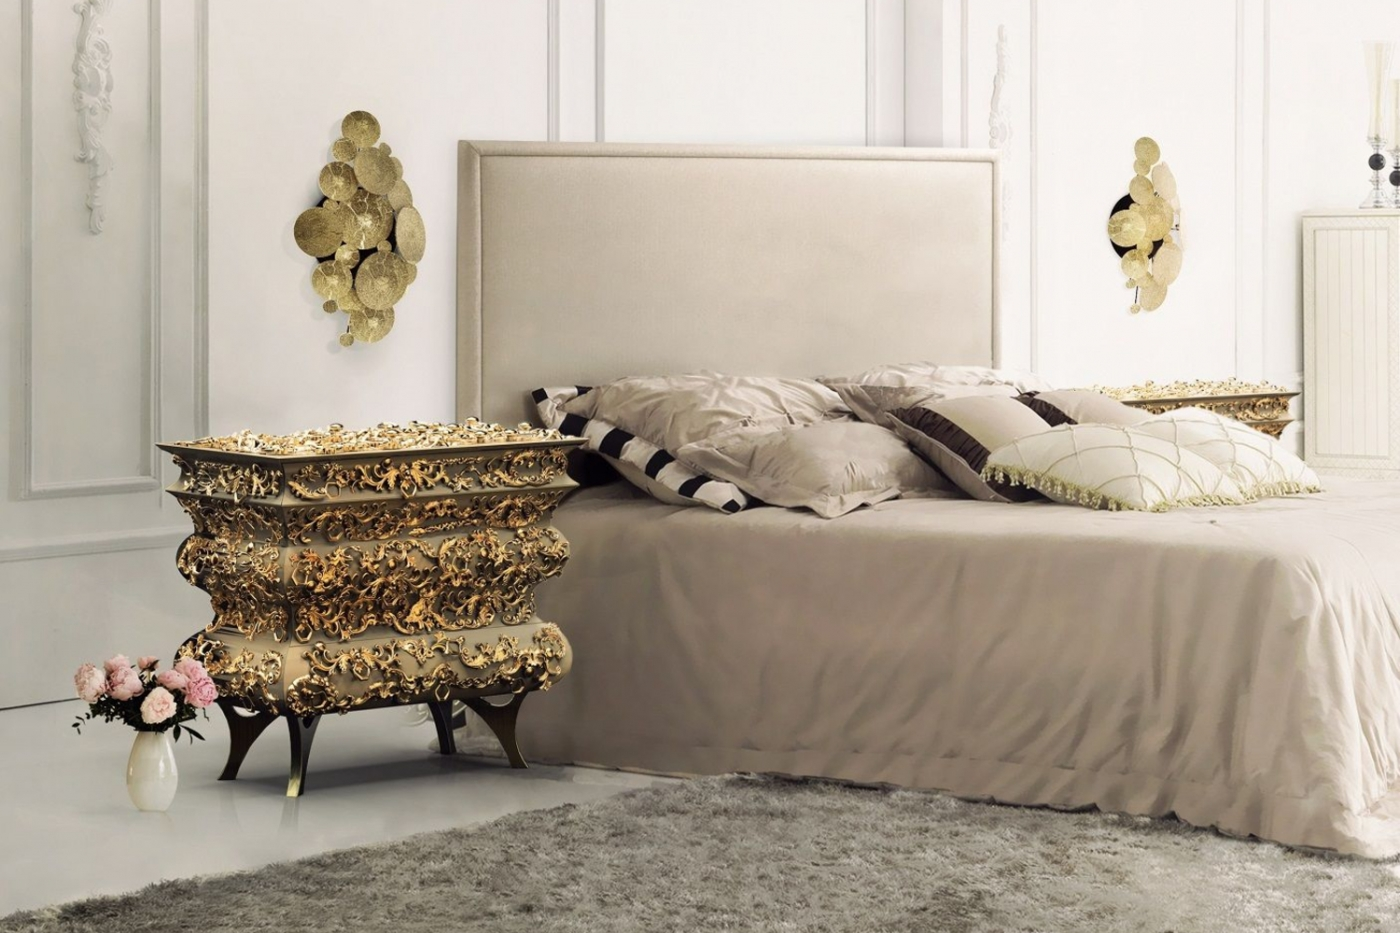 Imposing Nightstands By Boca do Lobo: The Best Of Fine Craftsmanship feature image 41 1400x933